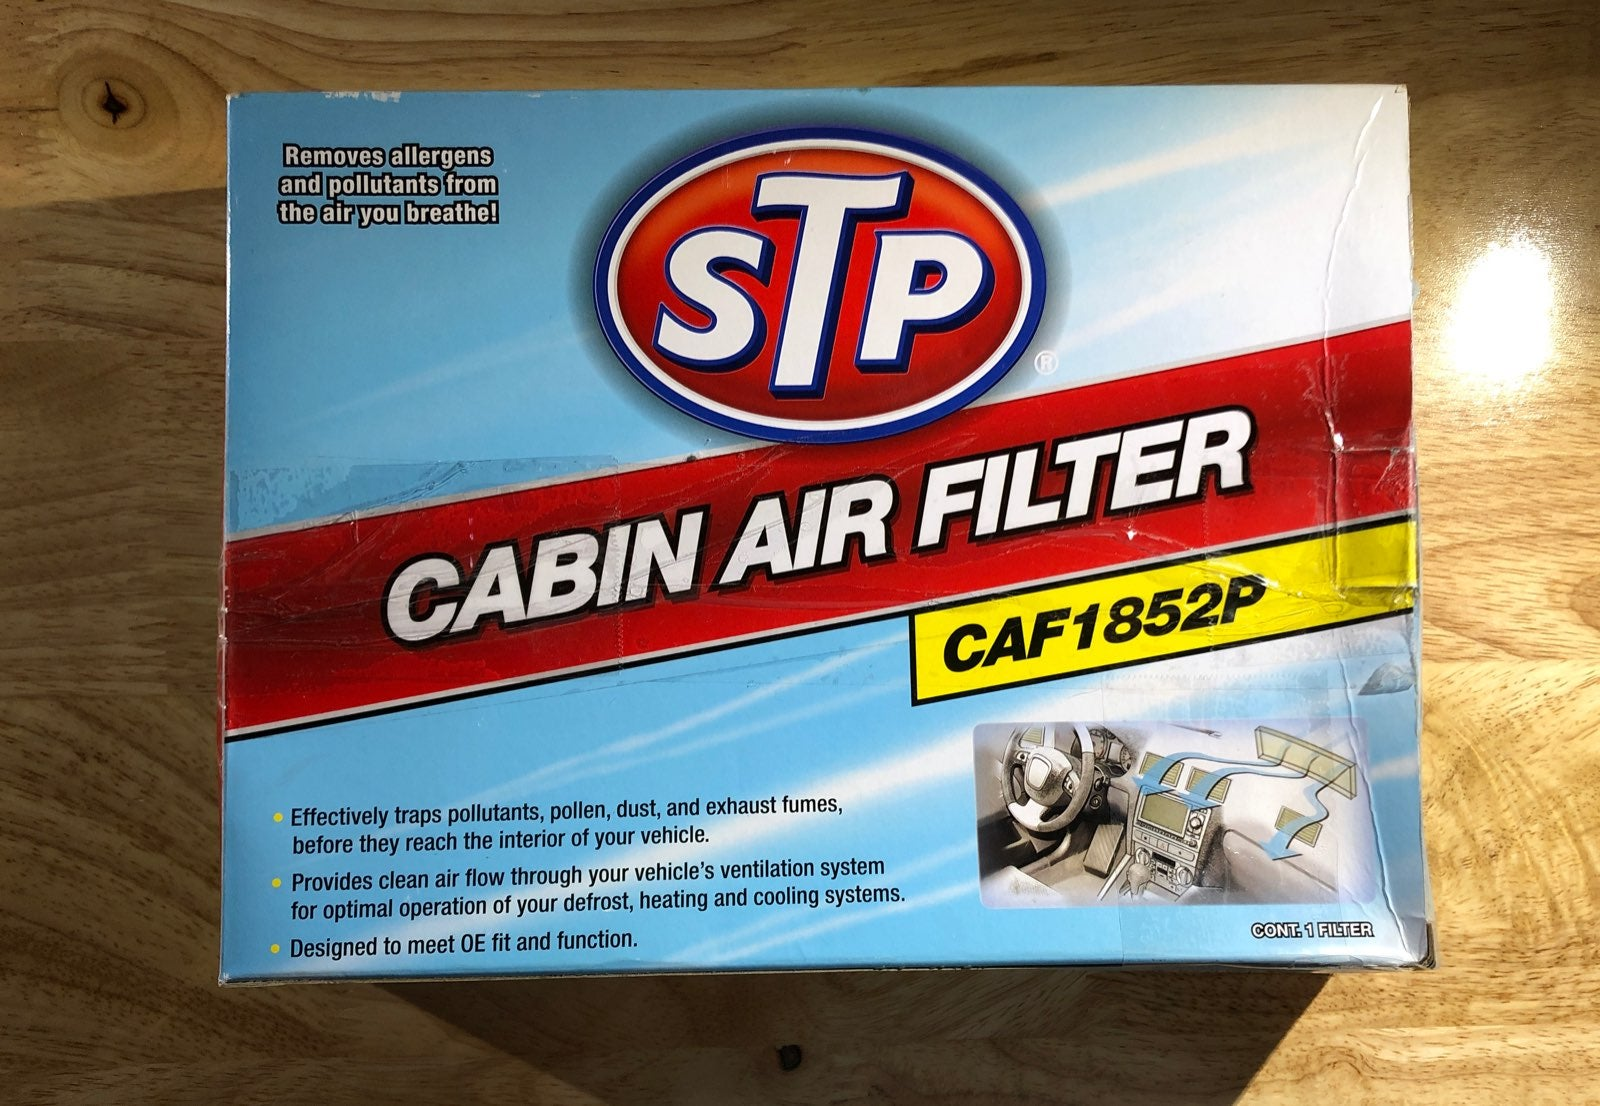 STP Cabin Air Filter (CAF185P)